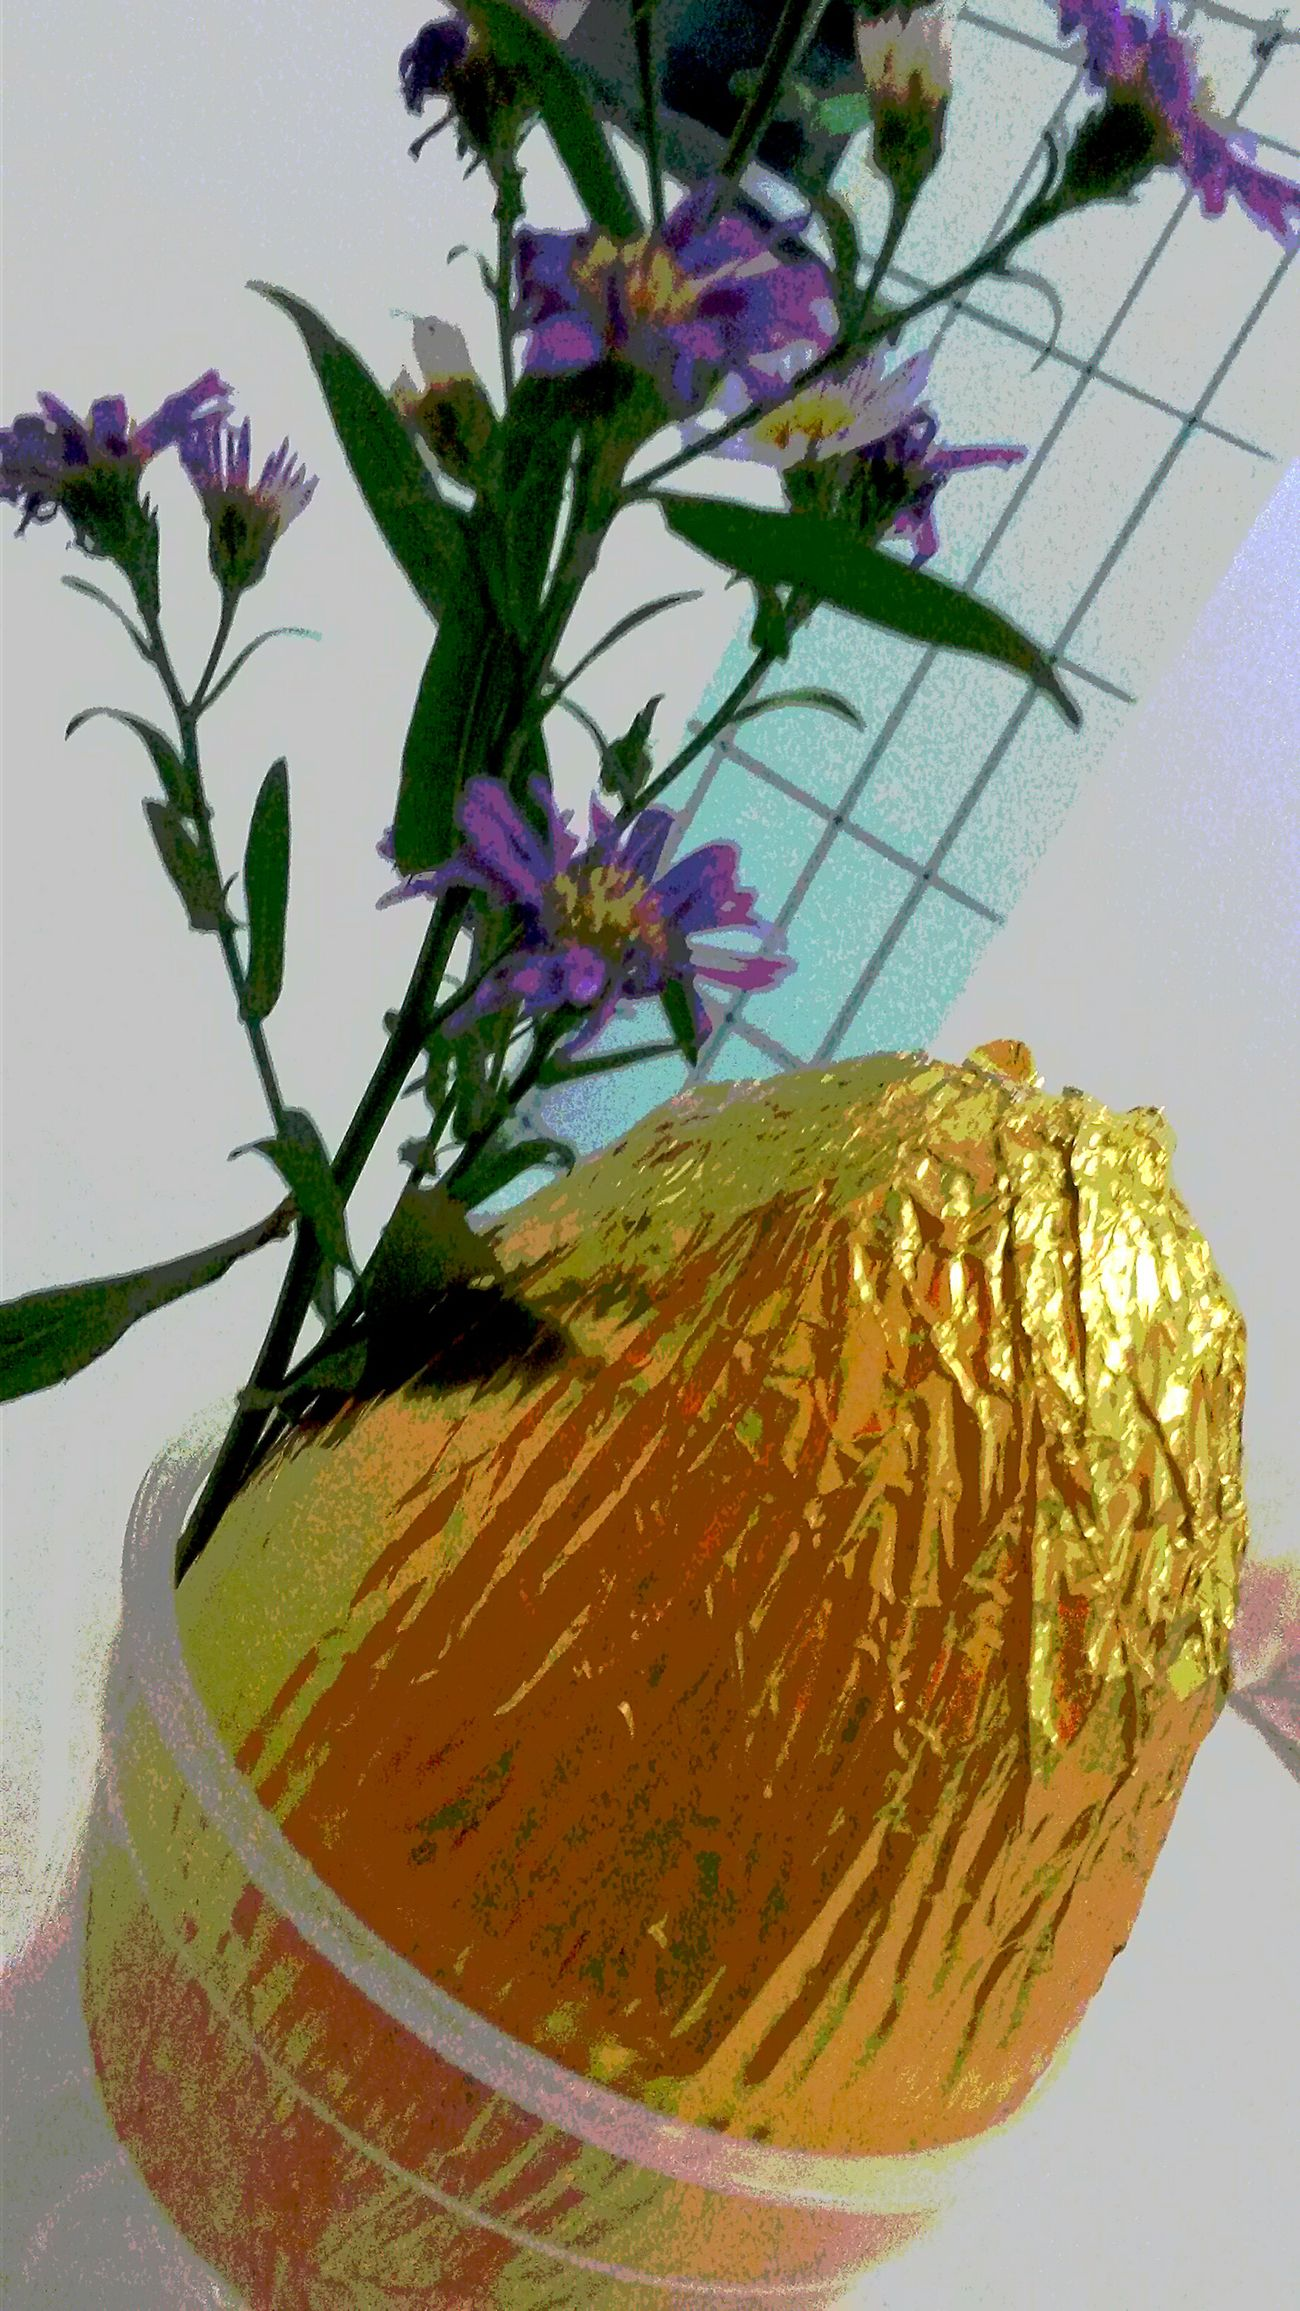 Easter Ready Easter Easter Eggs Easter Egg Easter Egg Hunt Golden Egg Flower